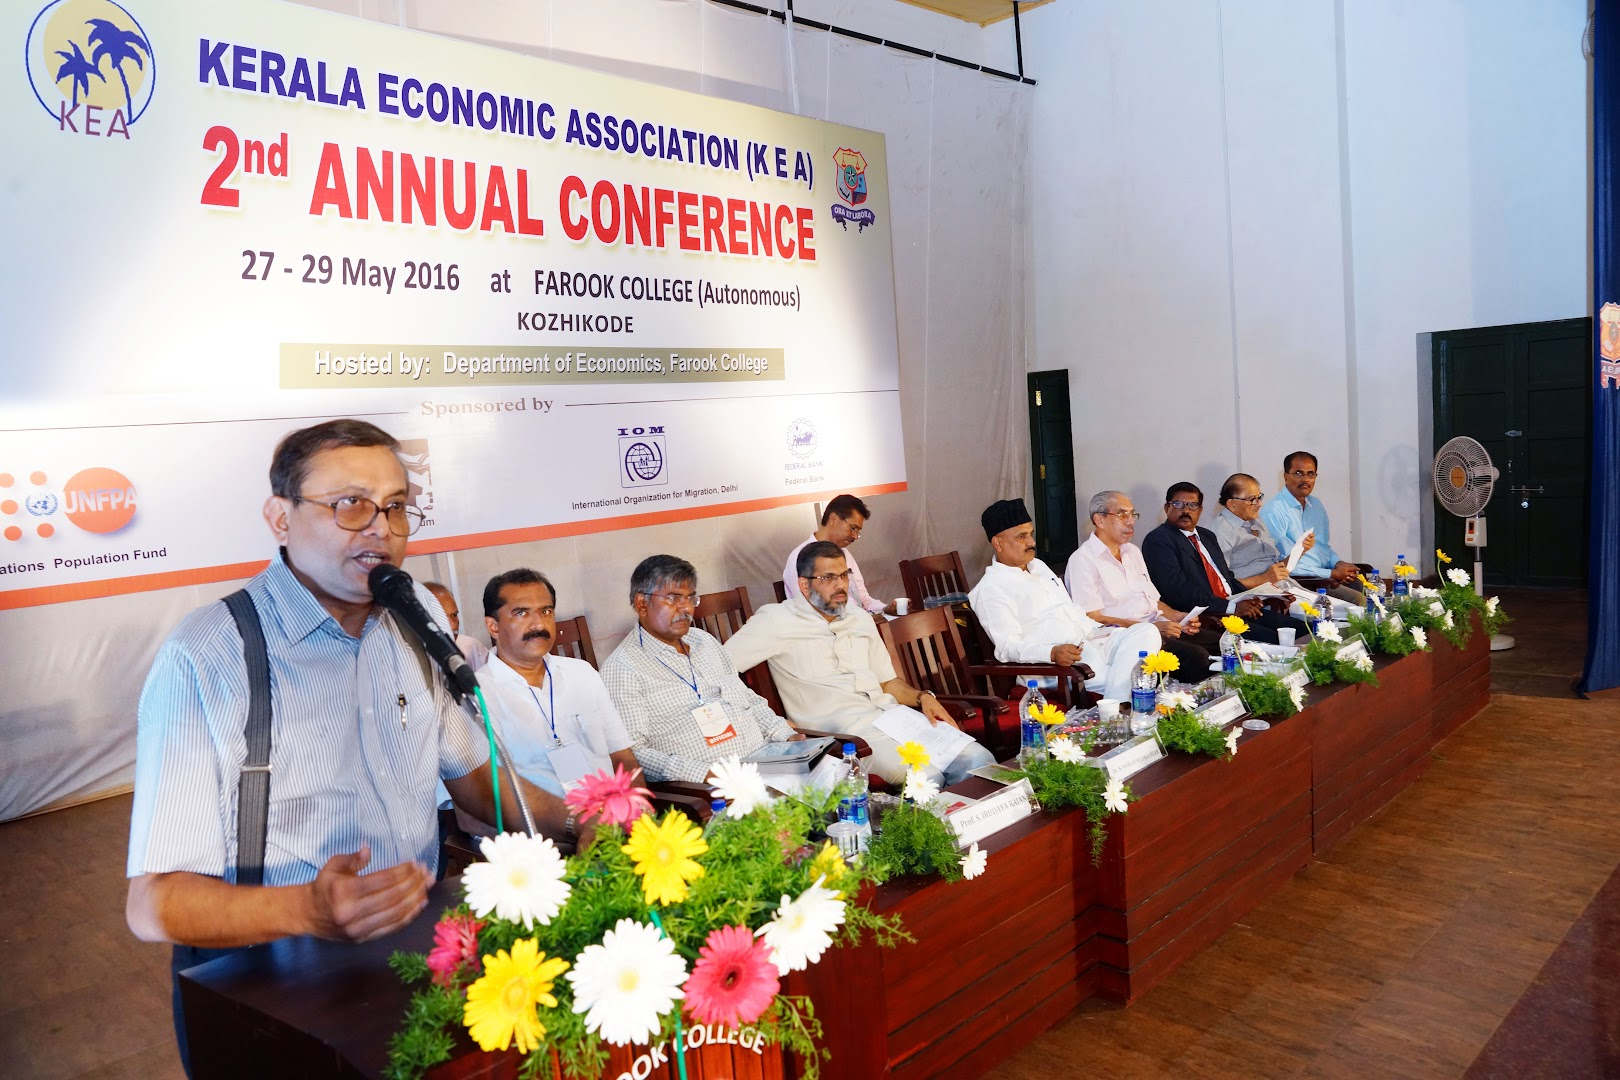 Second Annual Conference